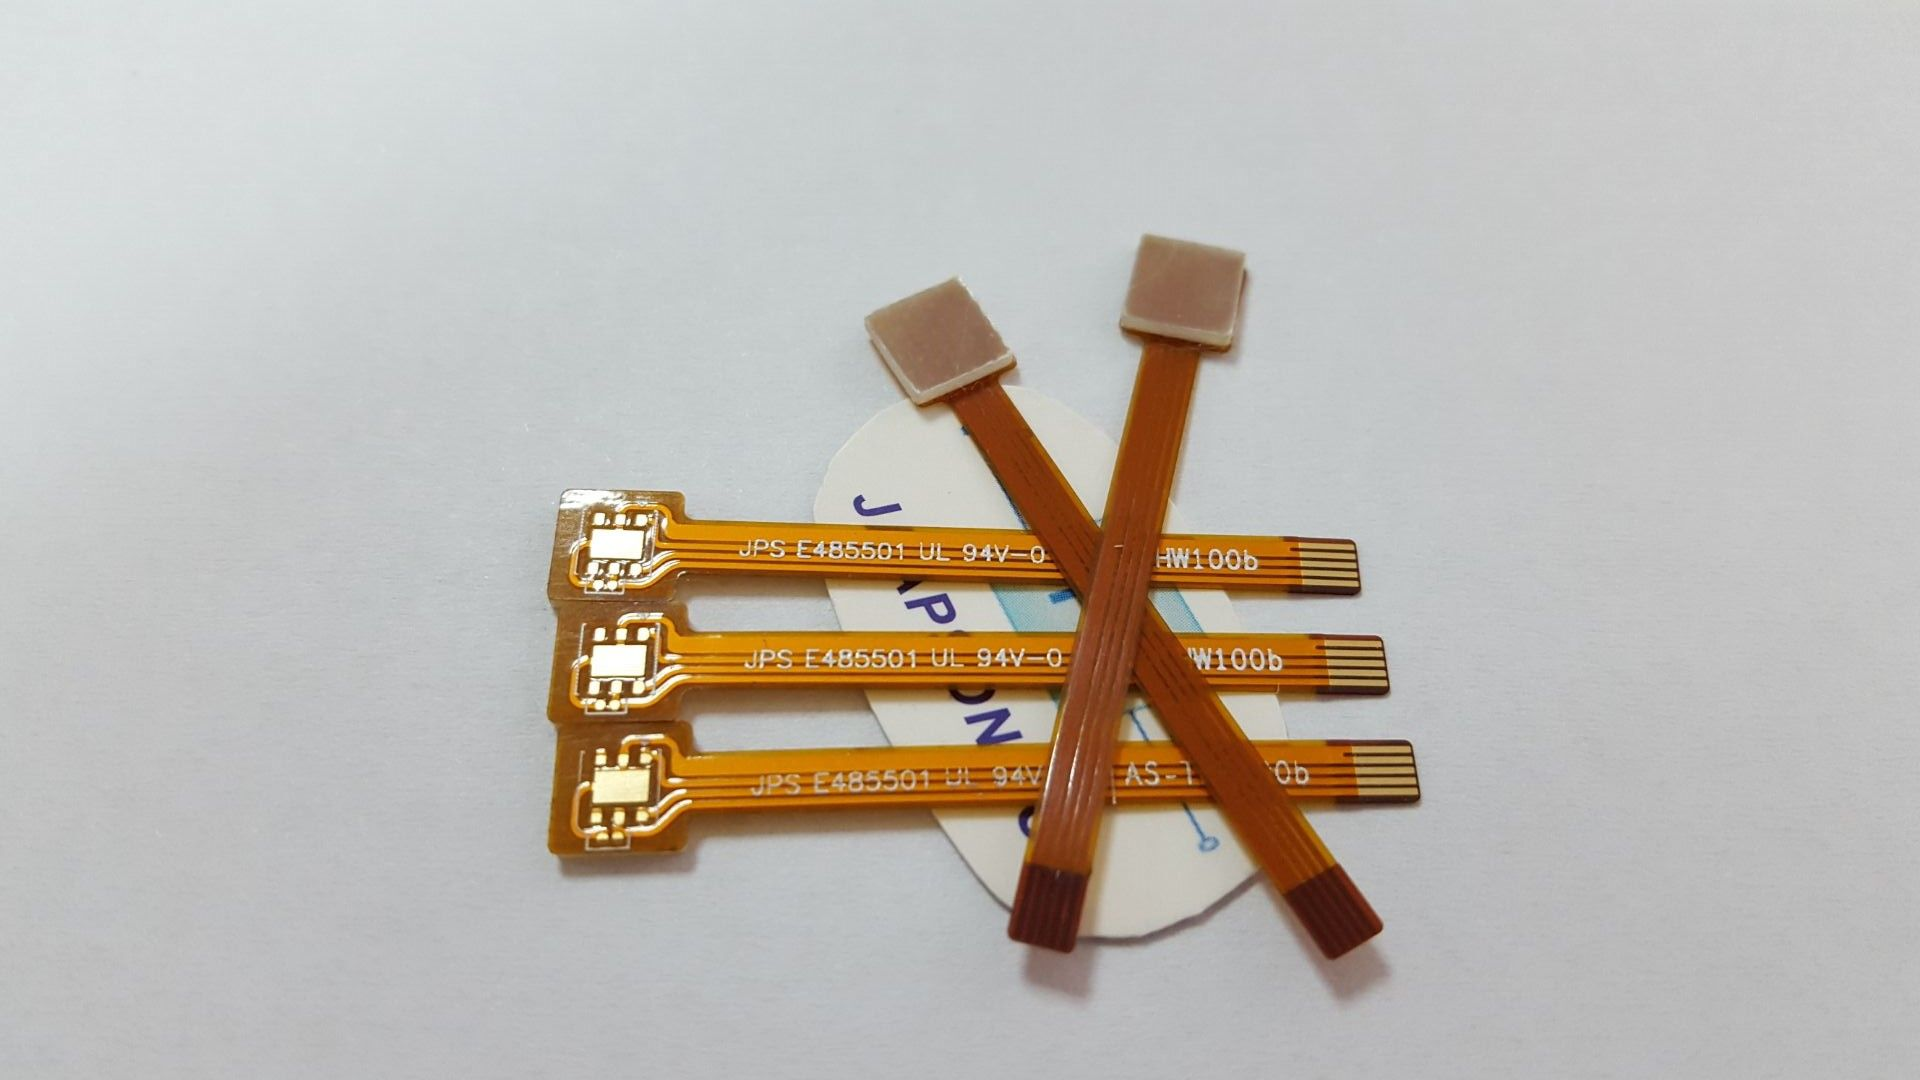 Flex Pcb With Stiffeners Material Polyimide Kapton Thickness 0 13mm Copper Thickness 1oz Surface Finishing Enig Immersion Gold Orange Coverlay White Silk Sc